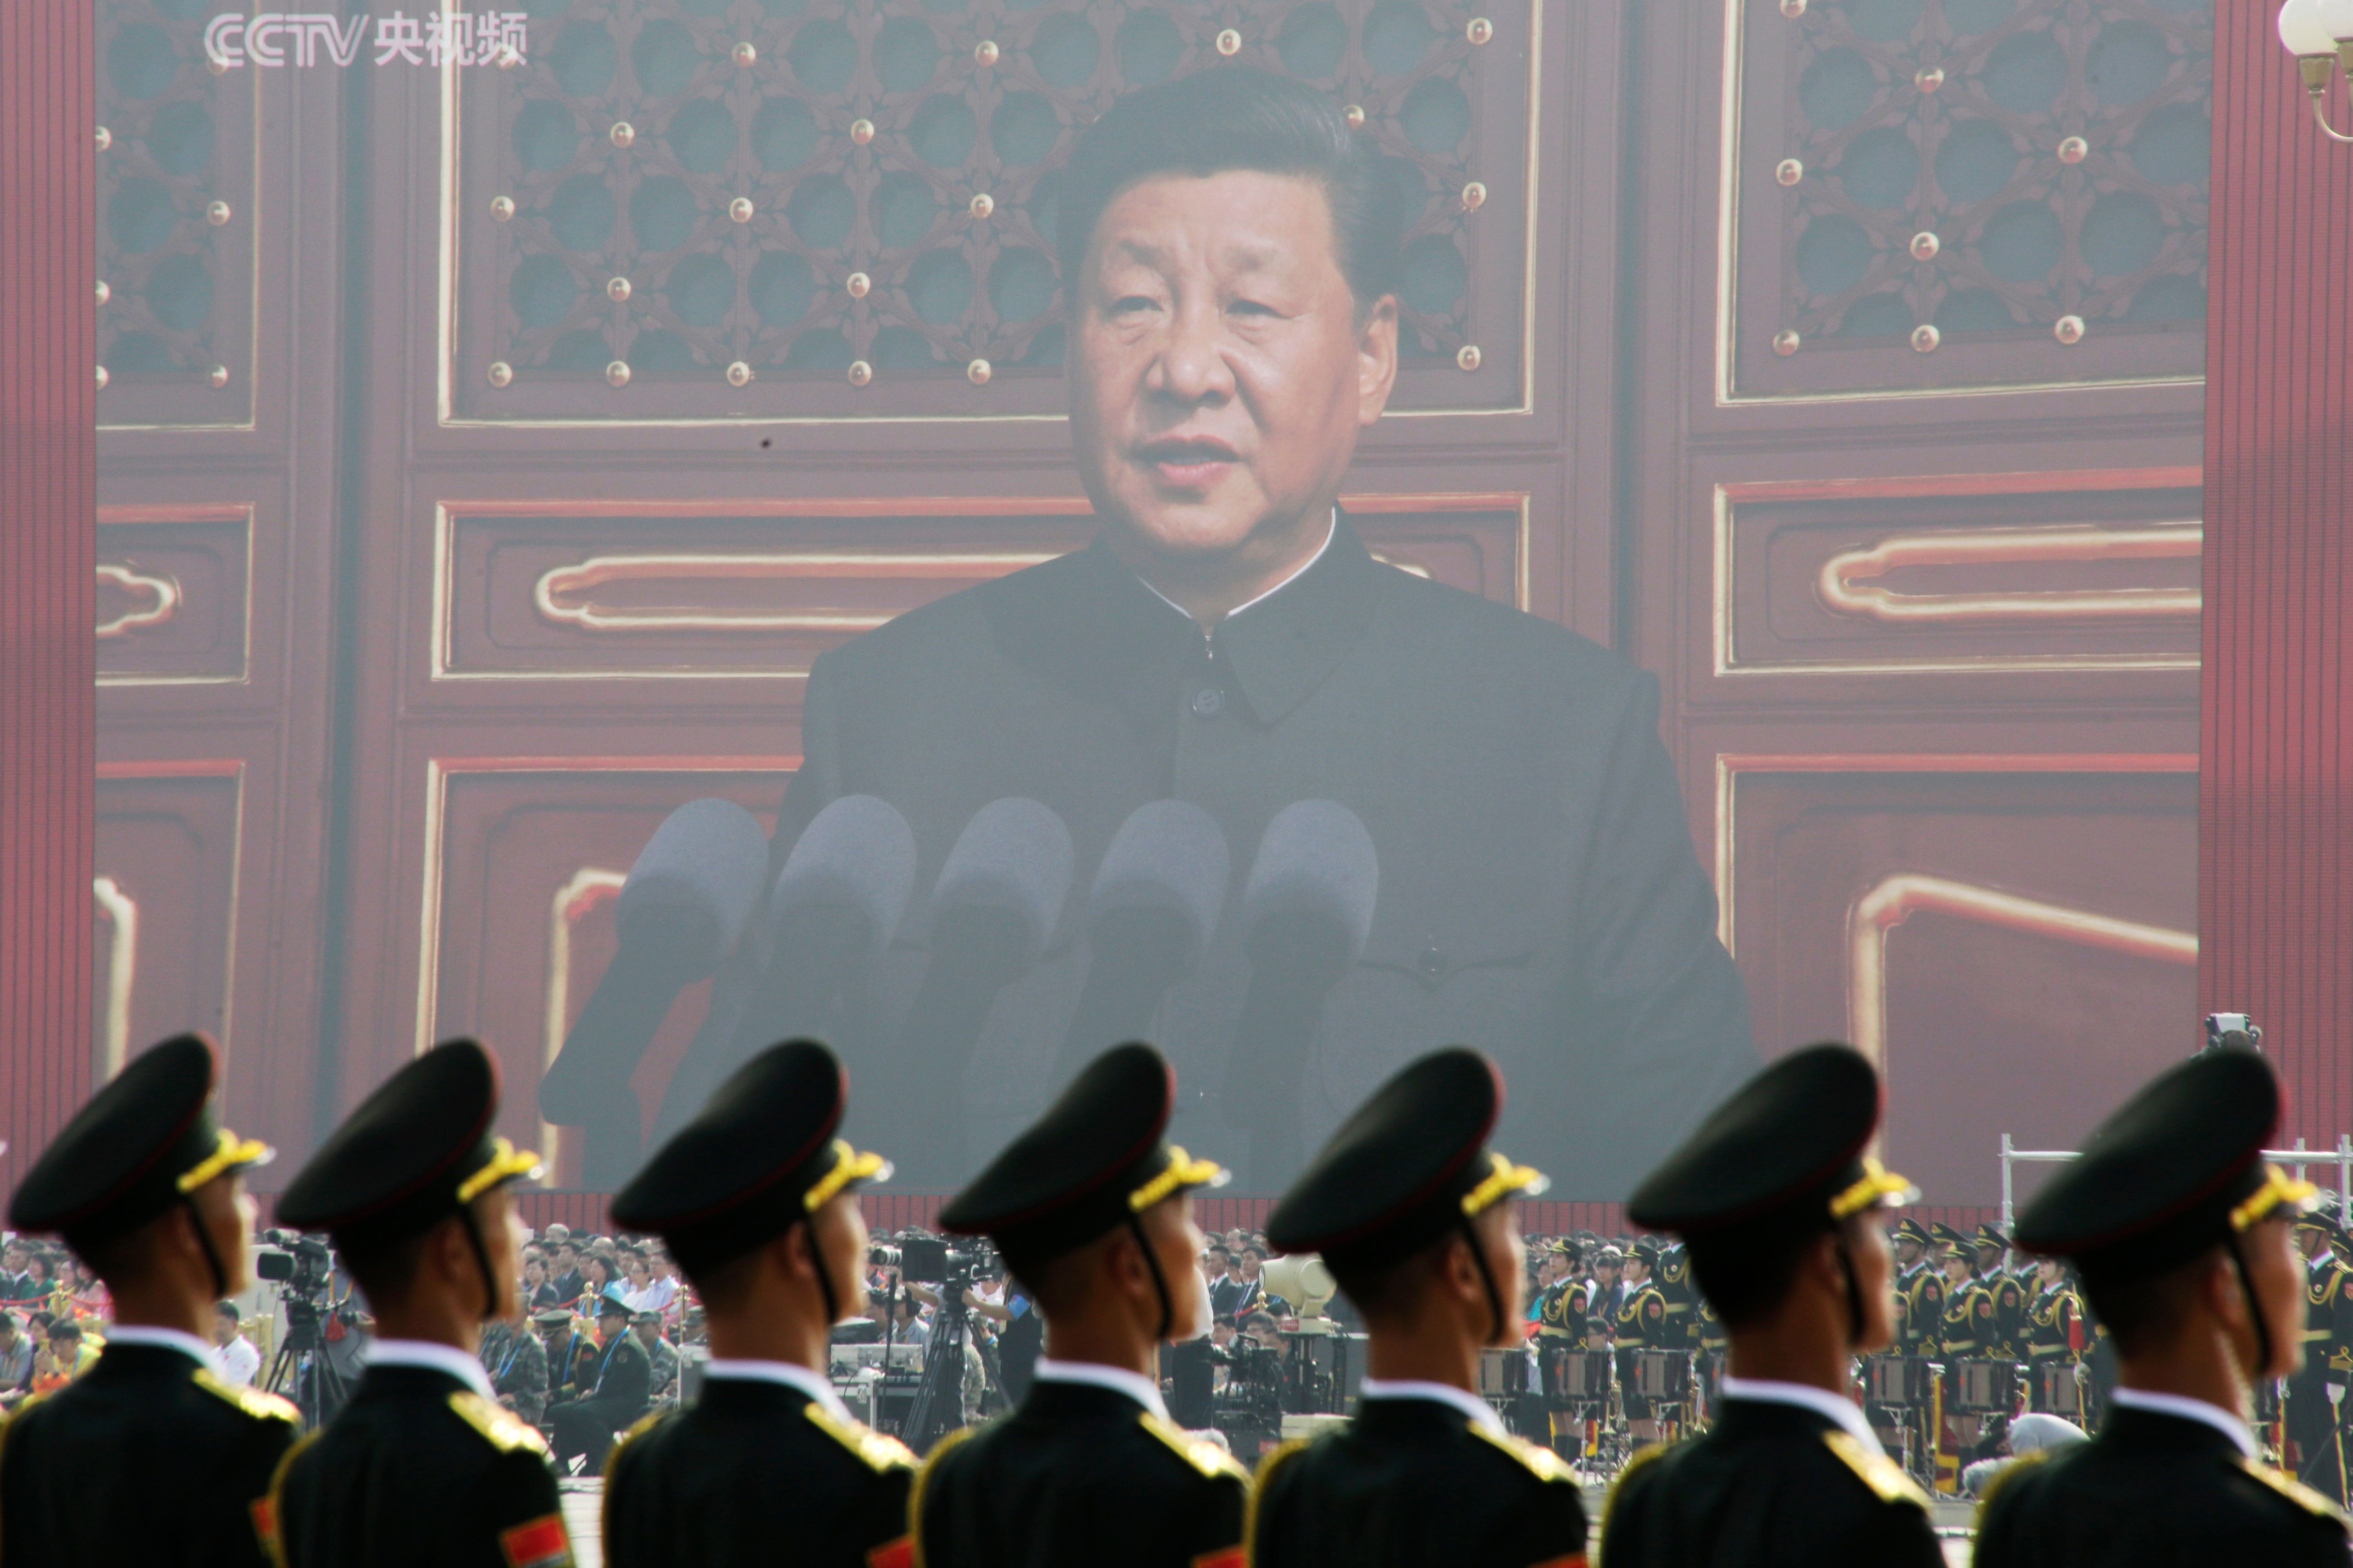 Soldiers of People's Liberation Army (PLA) are seen before a giant screen as Chinese President Xi Jinping speaks at the military parade marking the 70th founding anniversary of People's Republic of China